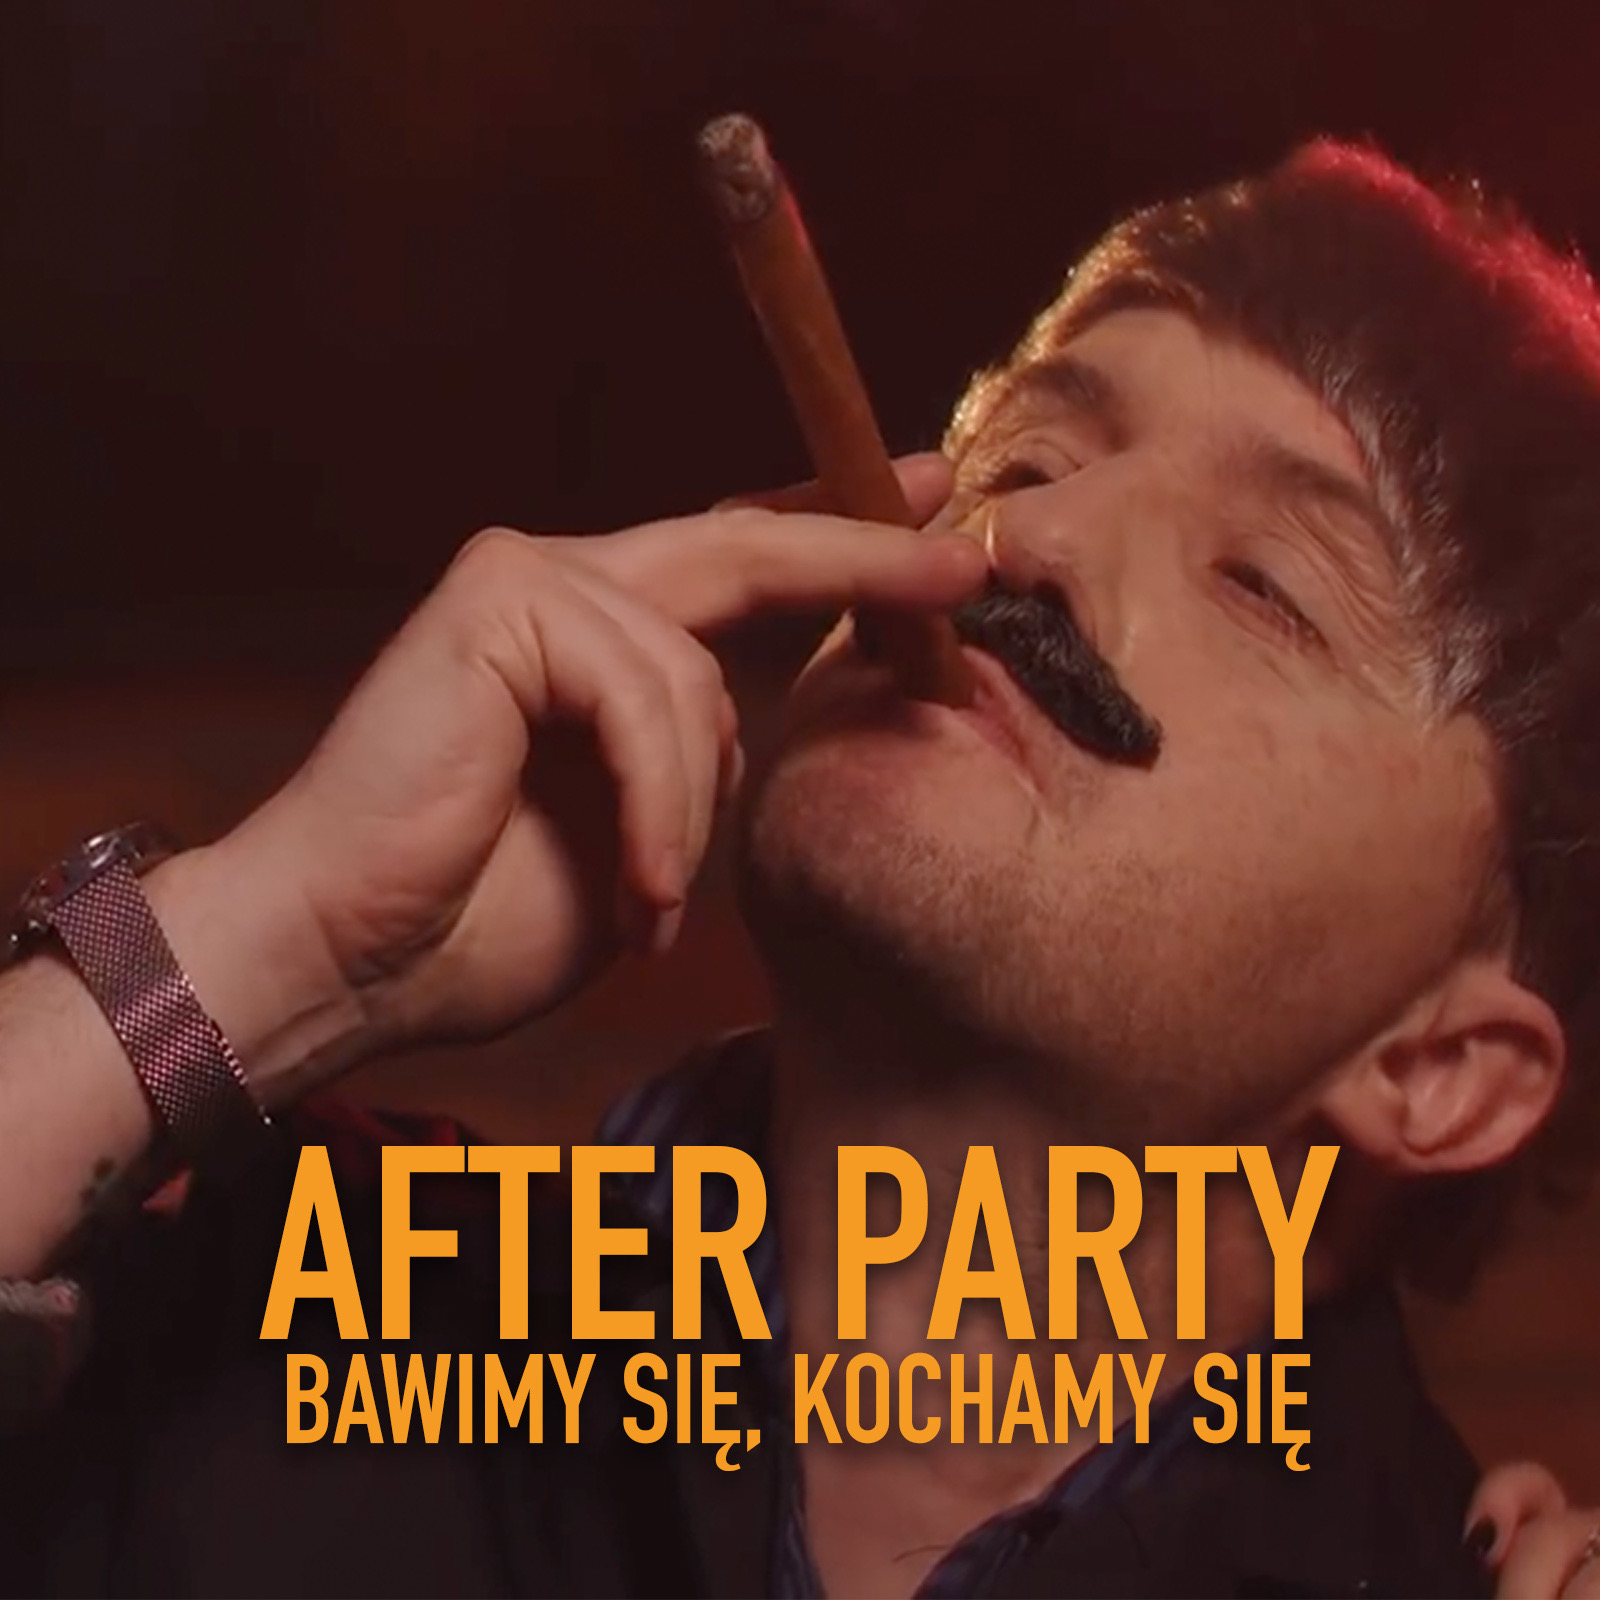 After Party - Bawimy Się, Kochamy Się